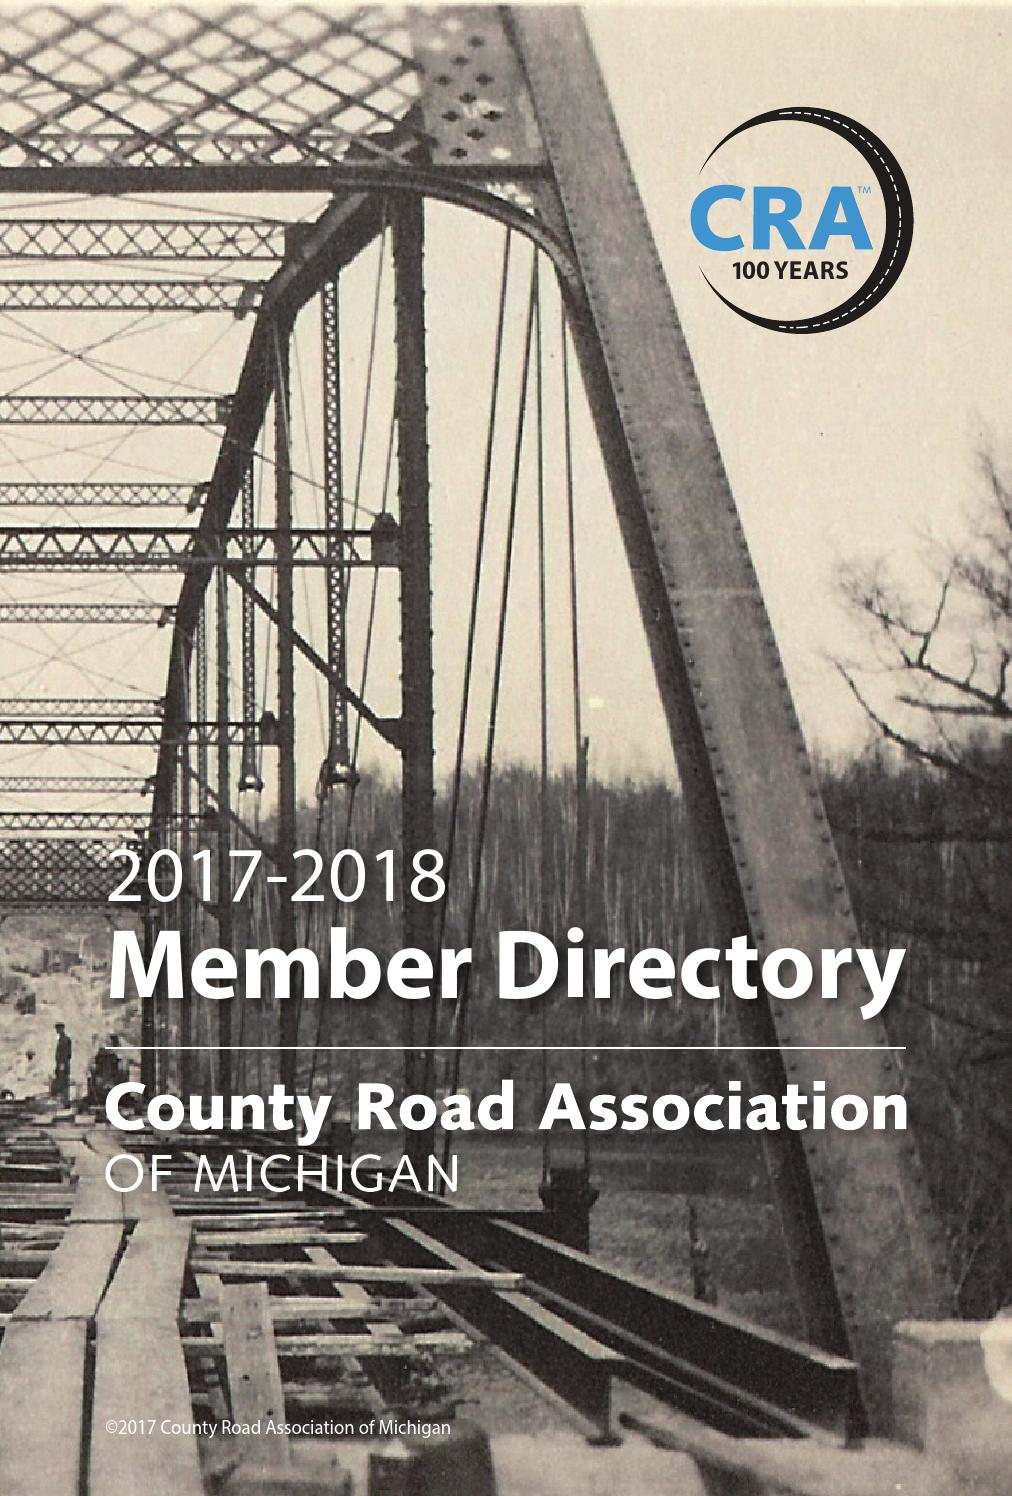 County Road Association Of Michigan 2017 2018 Directory By County Road Association Of Michigan Issuu Detailed location provided after booking. county road association of michigan